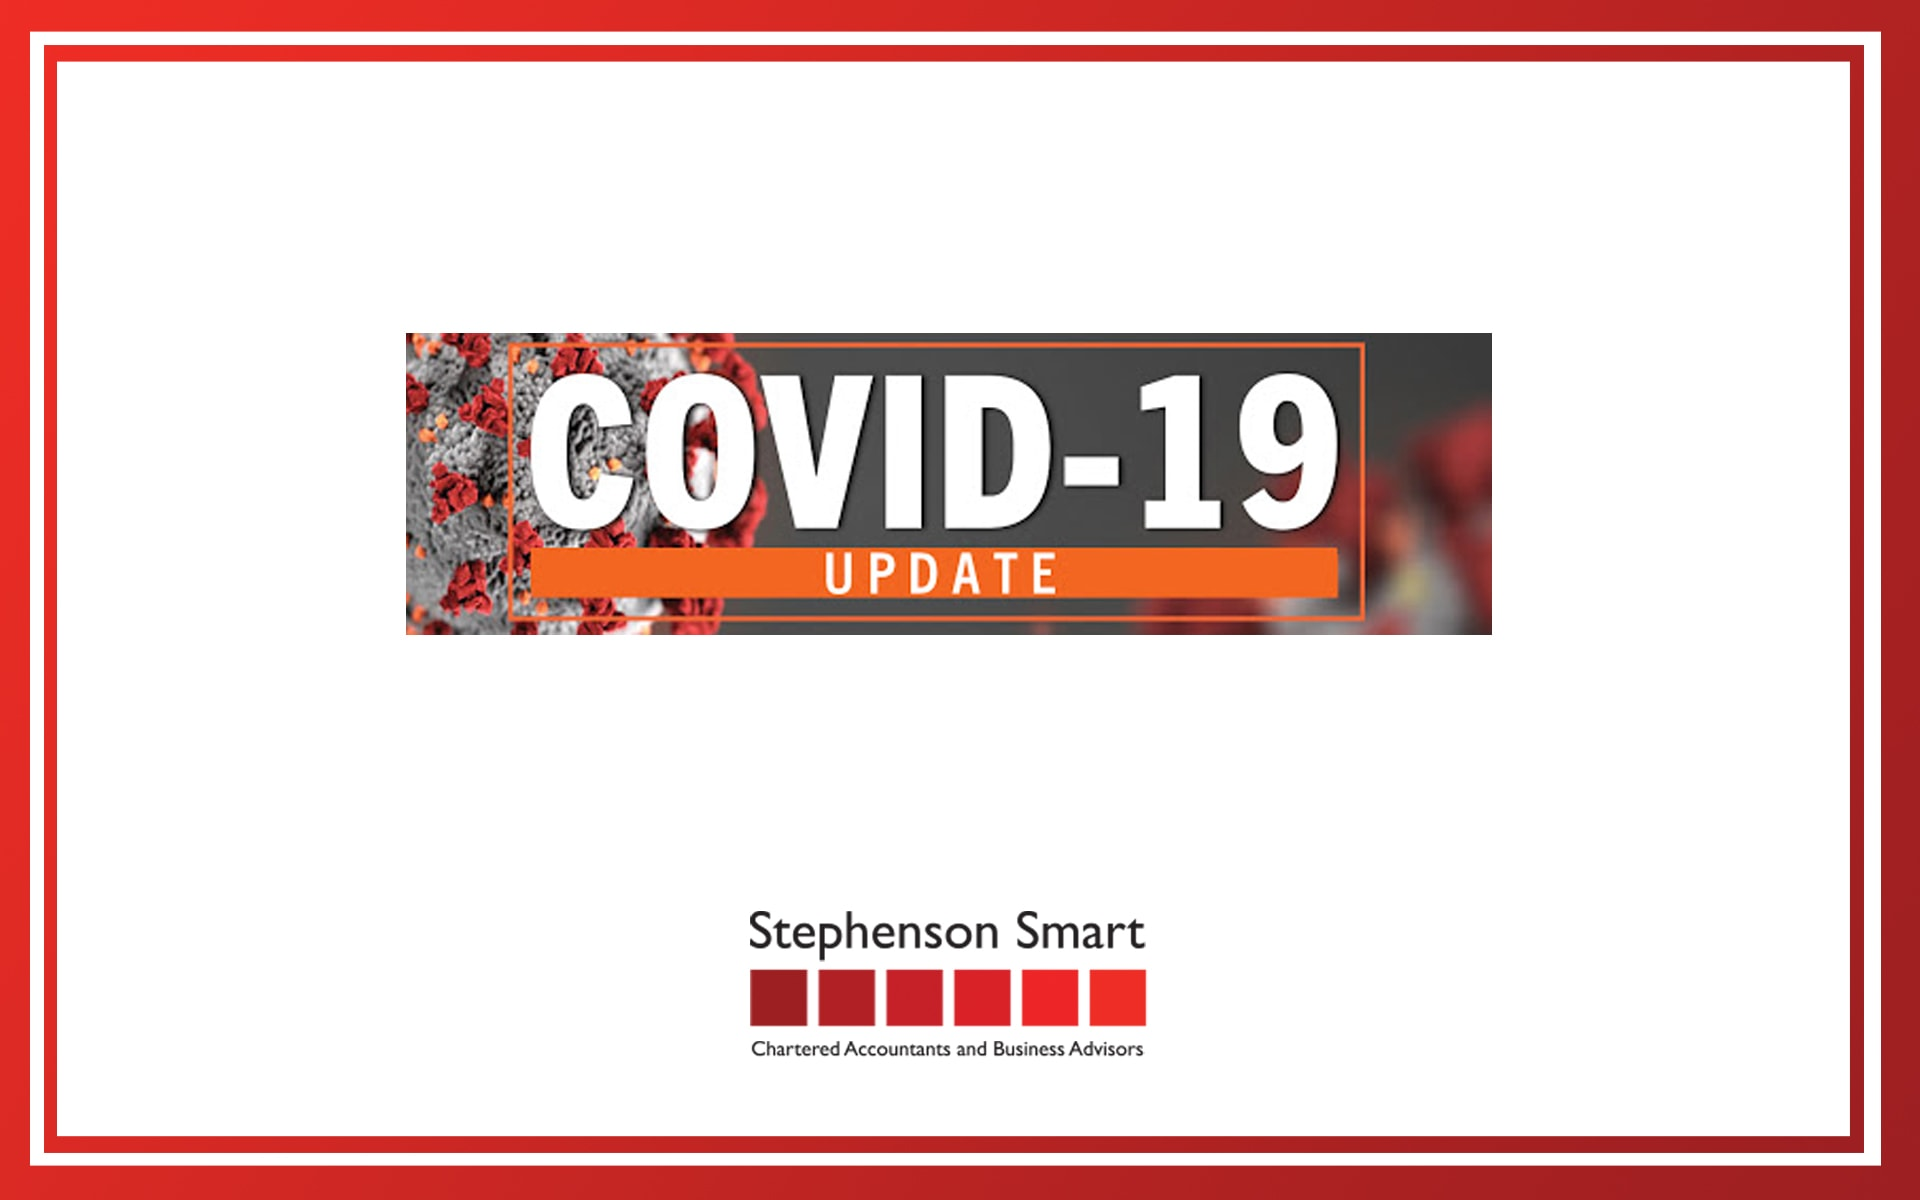 Covid-19: A notice from Stephenson Smart